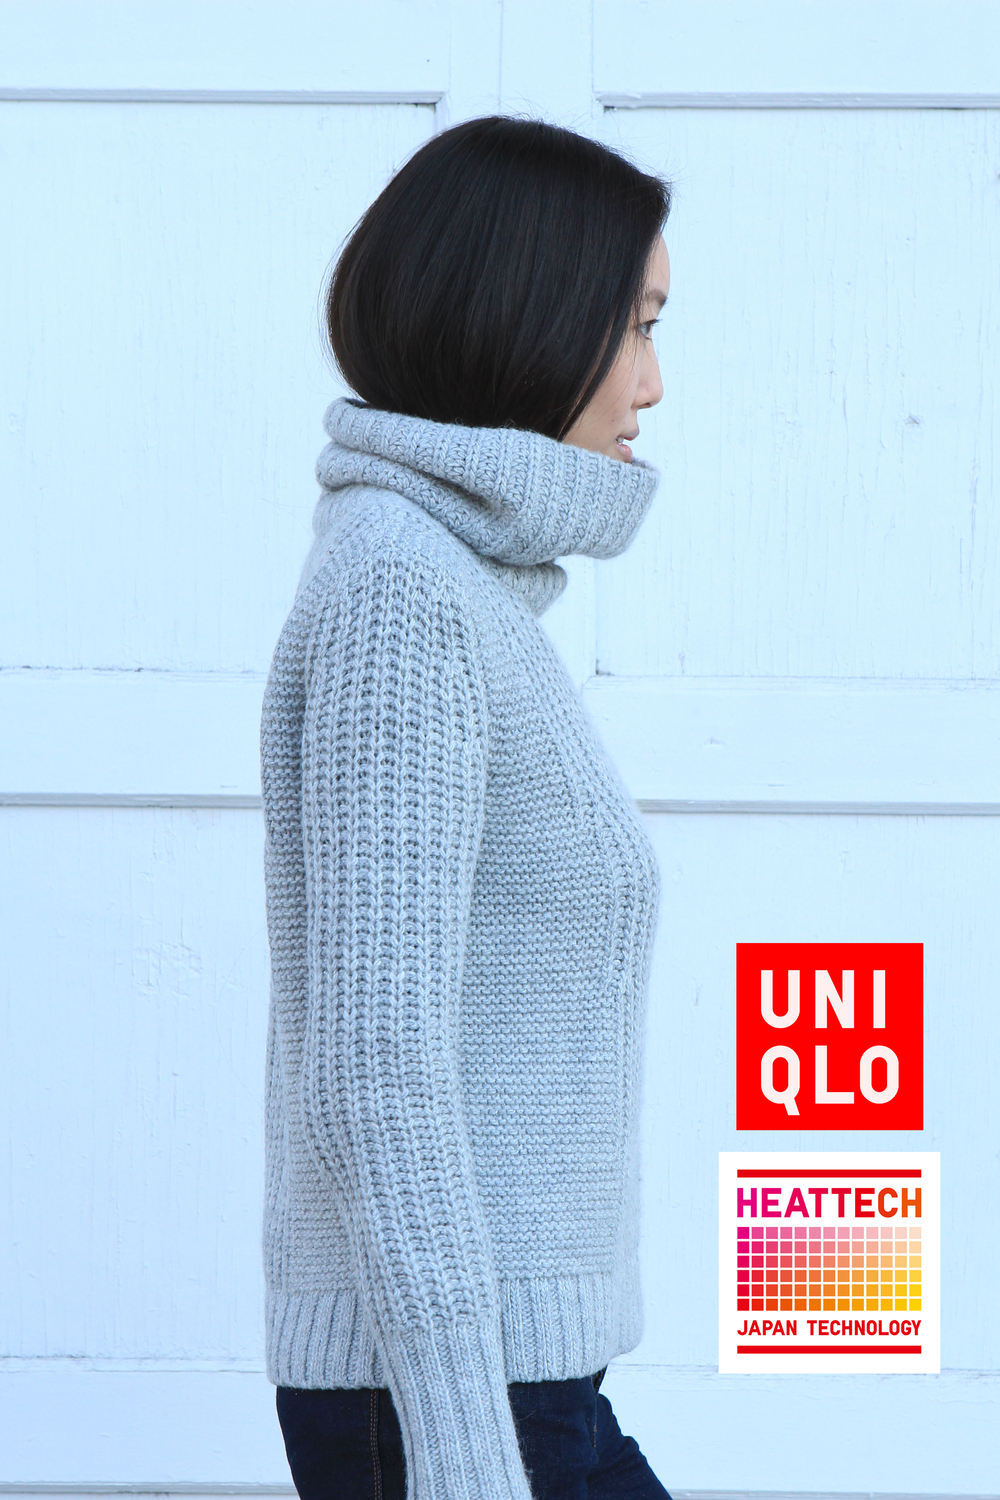 Ilin Chung Photography - Grace Yang - Uniqlo Mockup Ad - Heat Tech.jpg